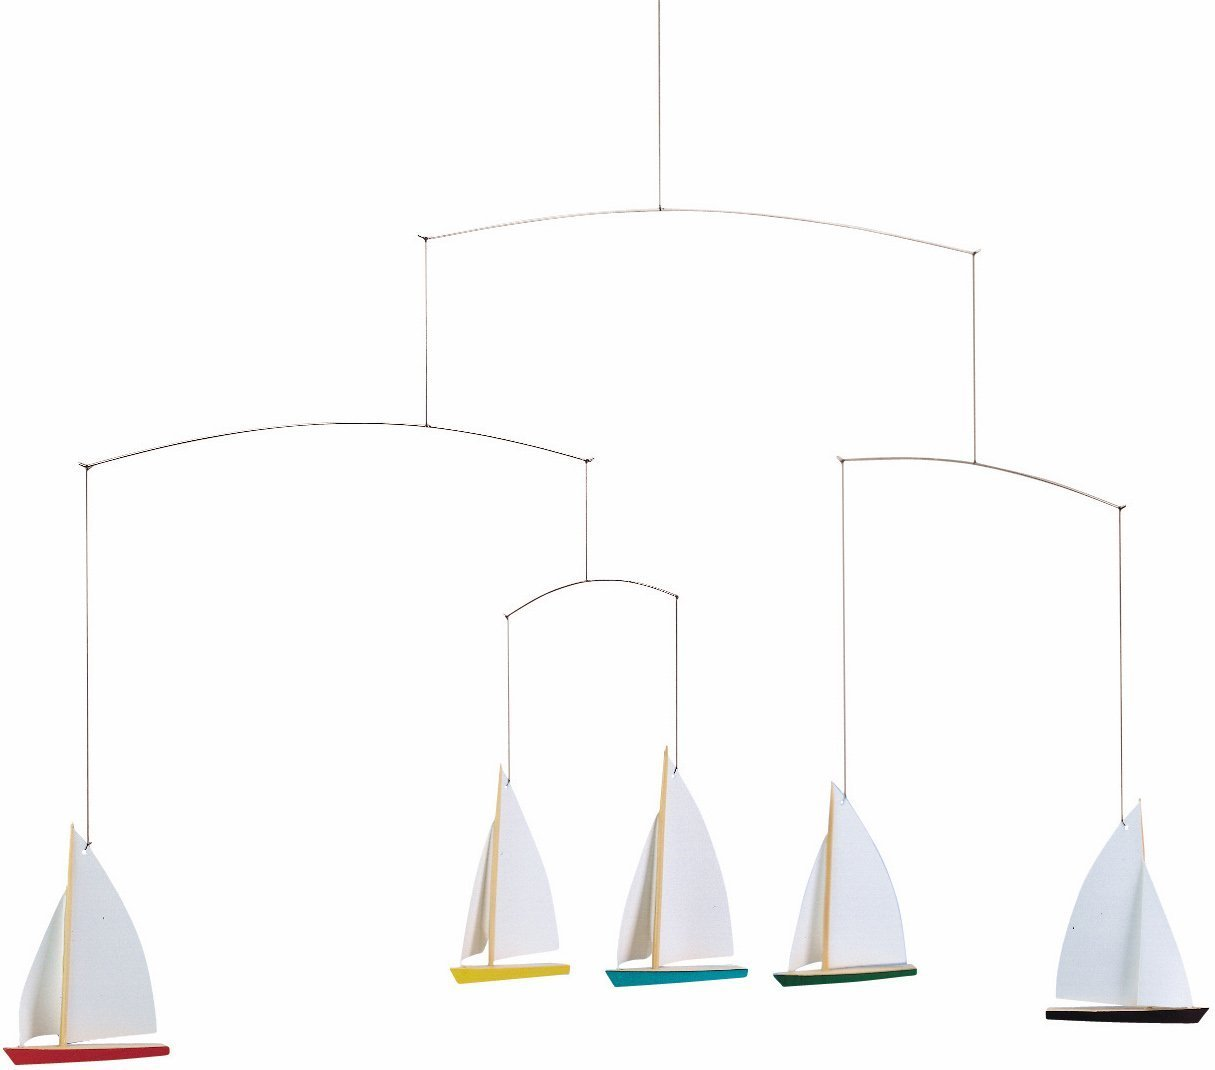 Flensted Mobiles Dinghy Regatta/5 Hanging Mobile - 26 Inches - High Quality Beech Wood f027